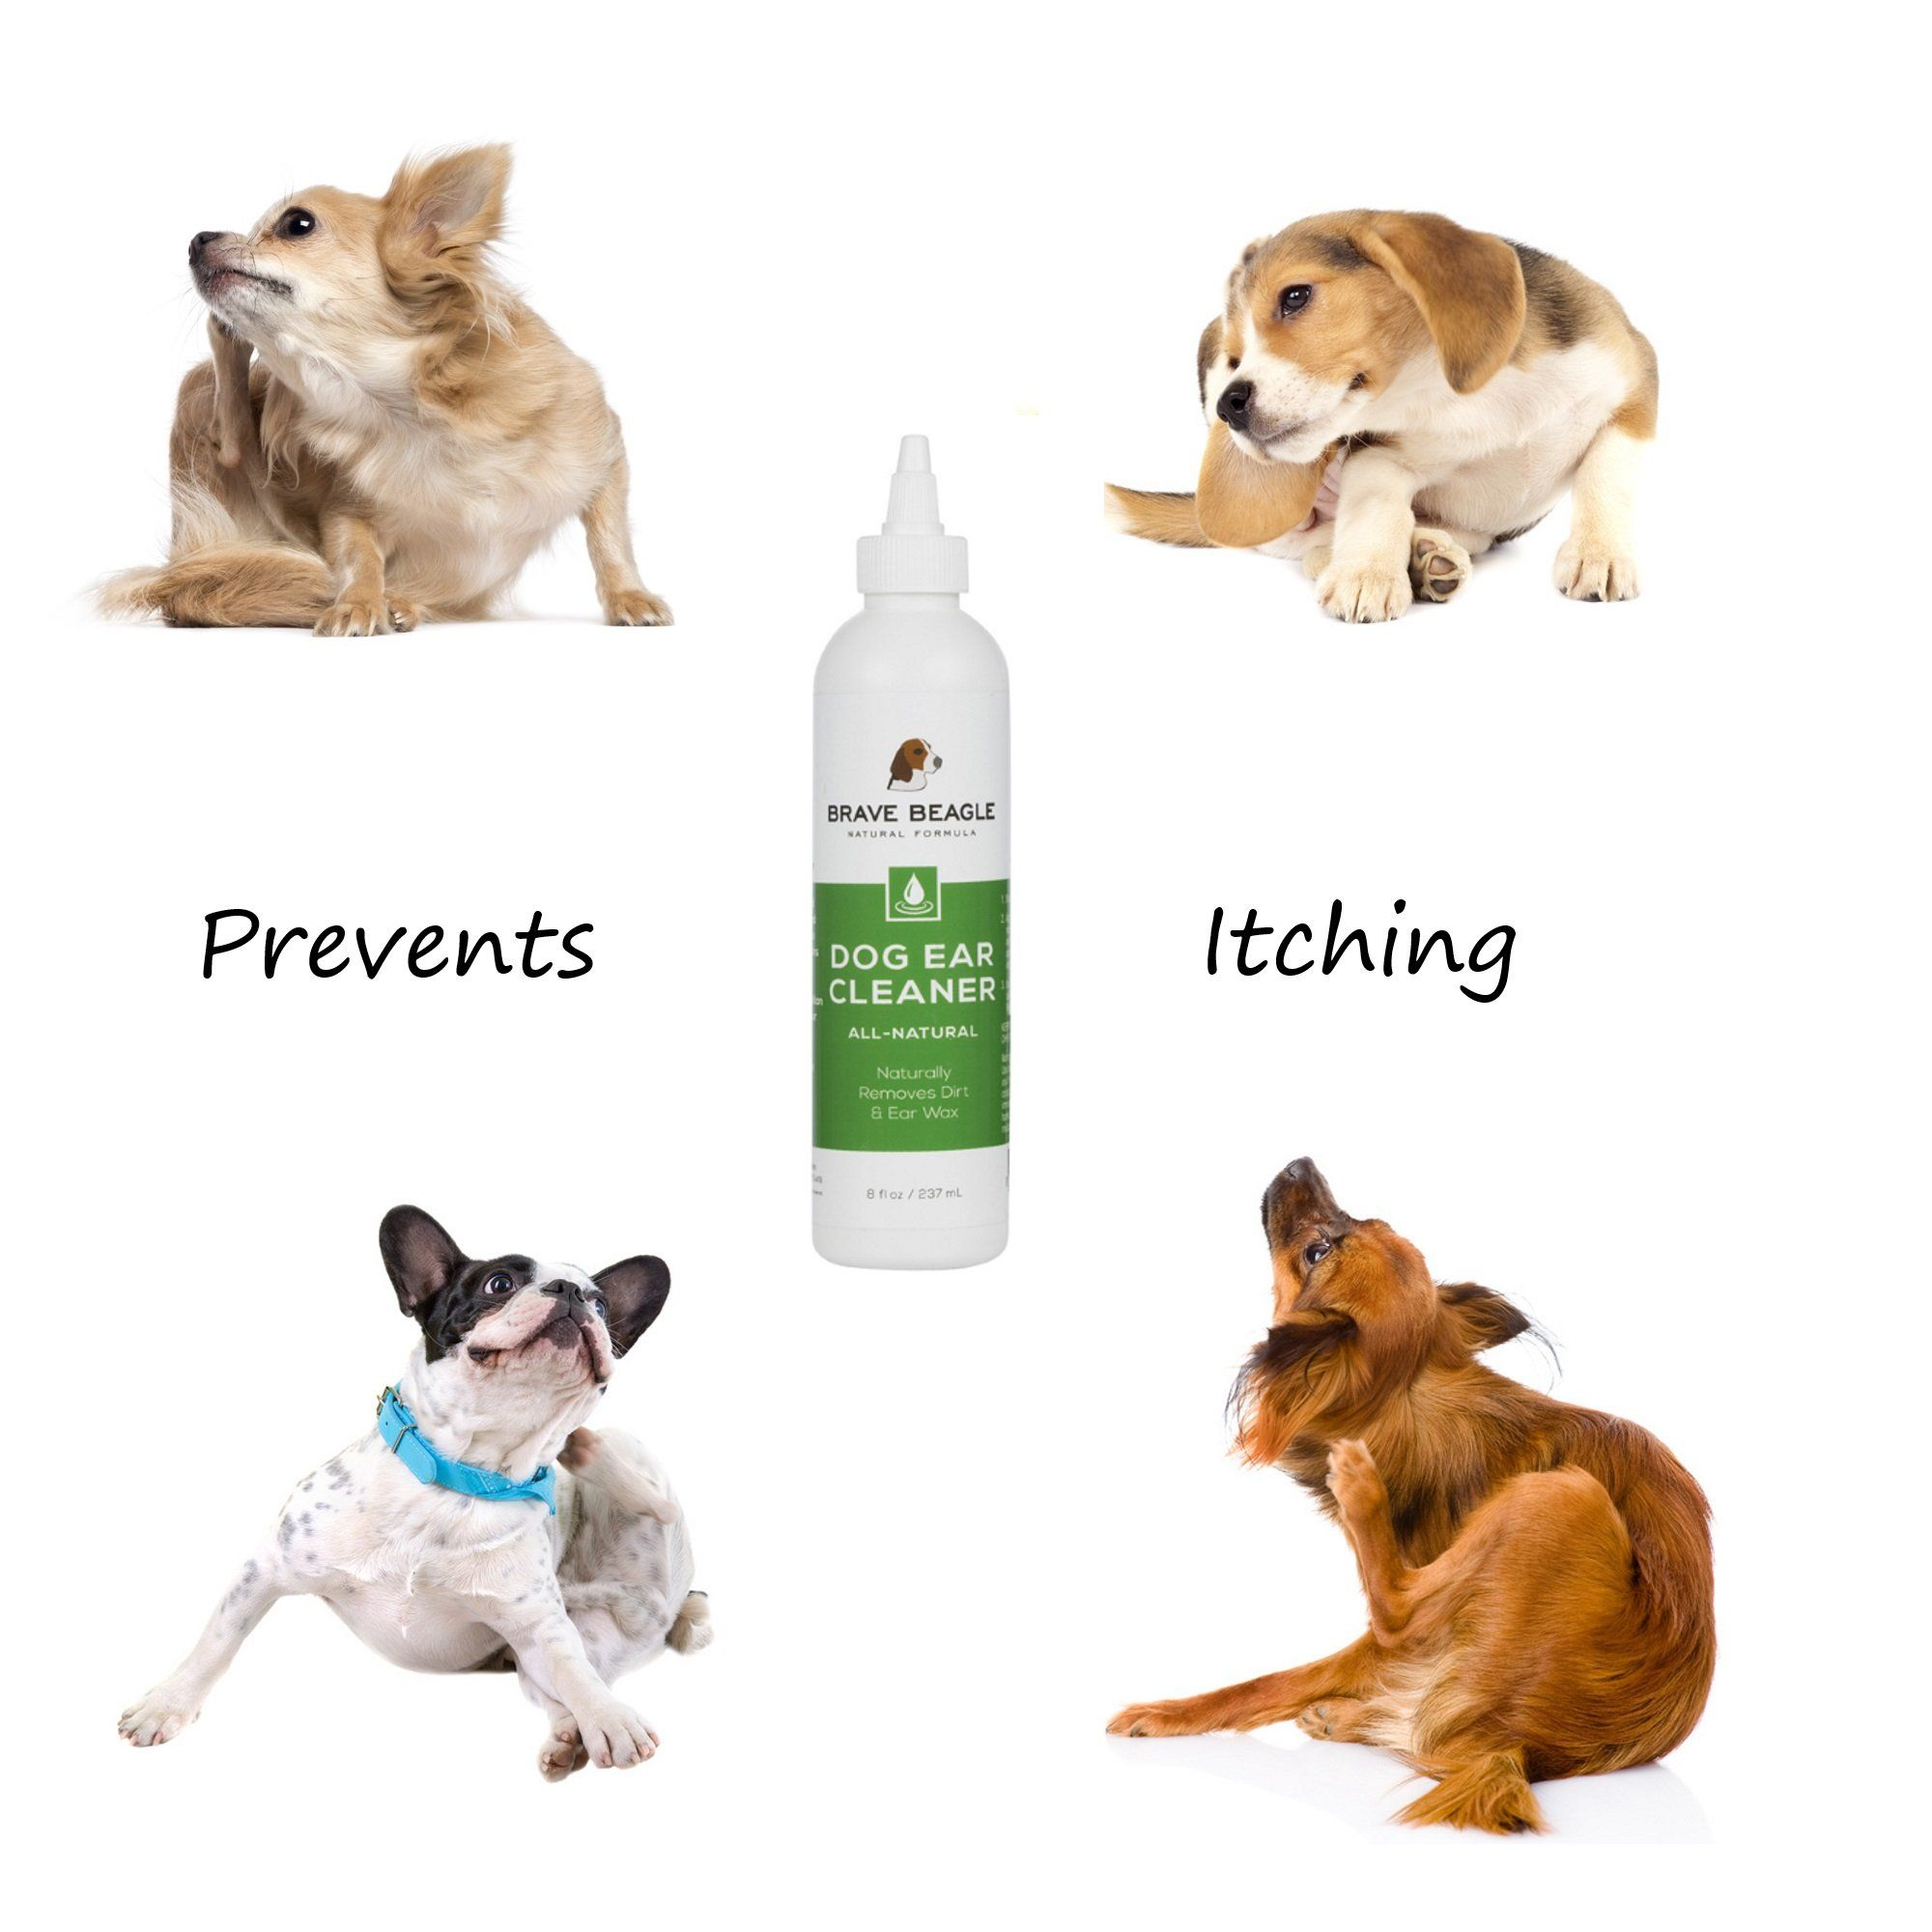 Itchy Pups Brave Beagle S All Natural Ear Cleaner Helps Prevent